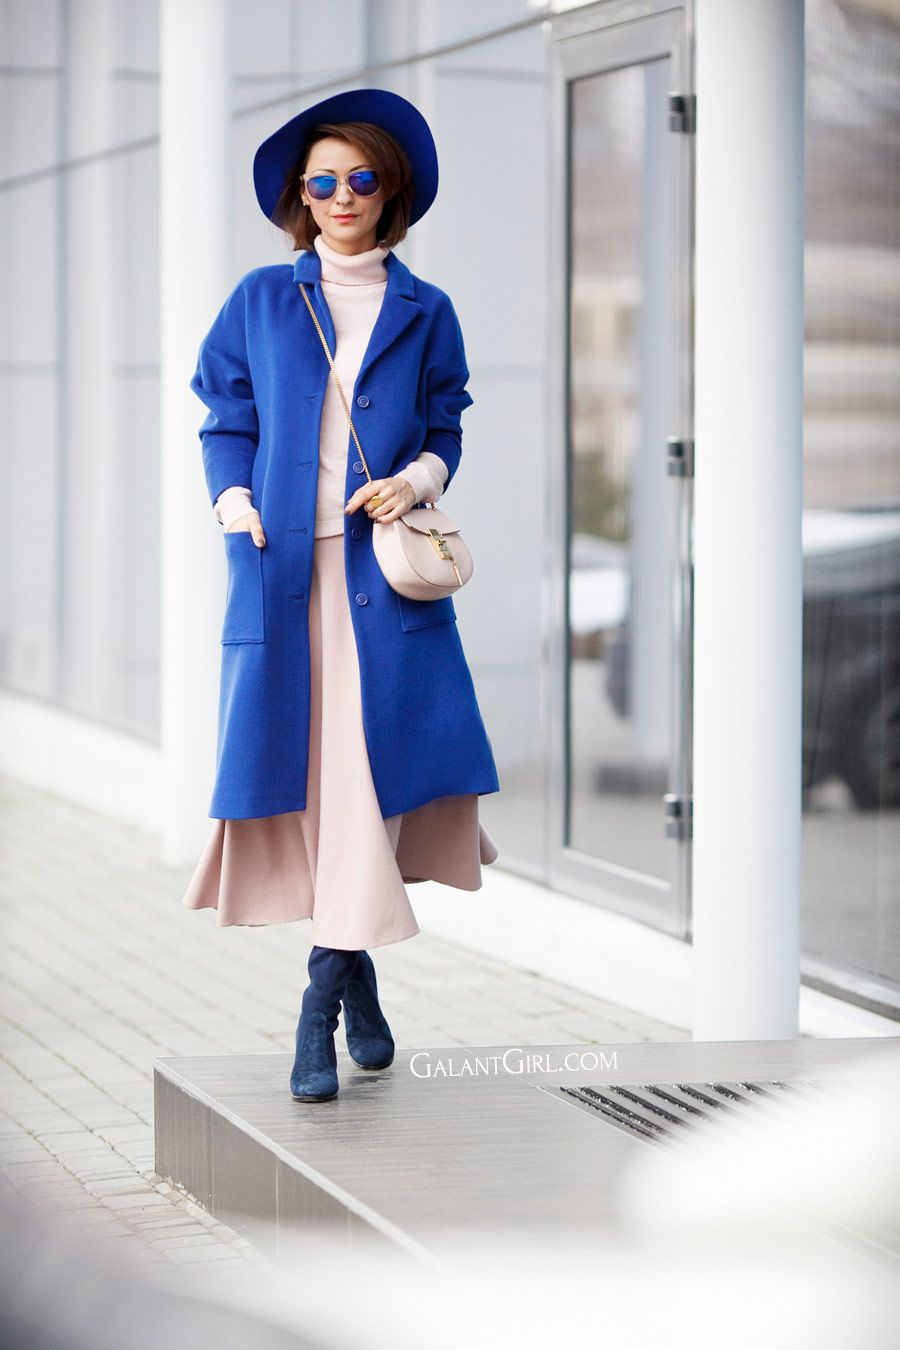 electric blue color outfits, blue coat outfits, chloe drew bag outfits,